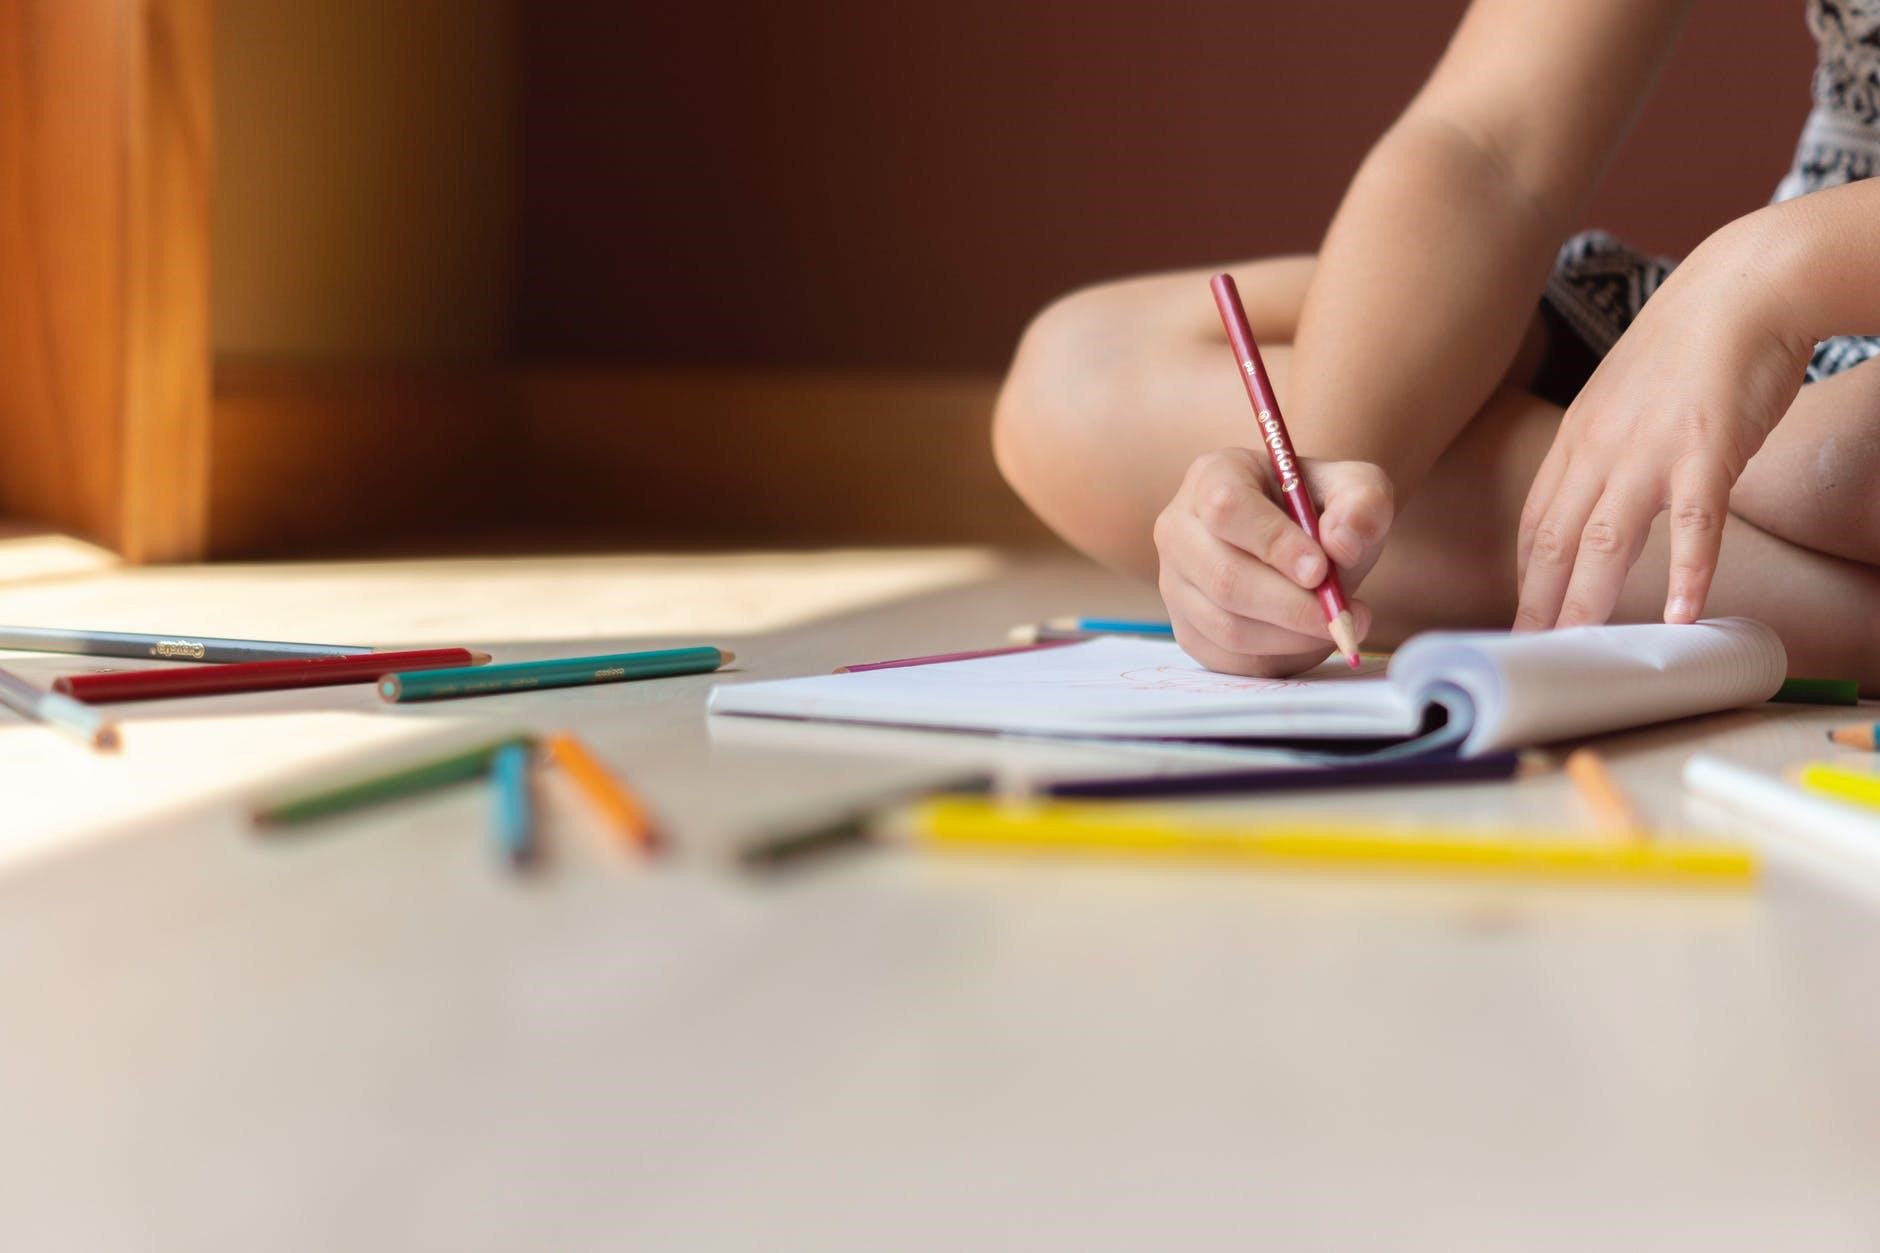 The Right Way To Encourage Creativity In Your Kids